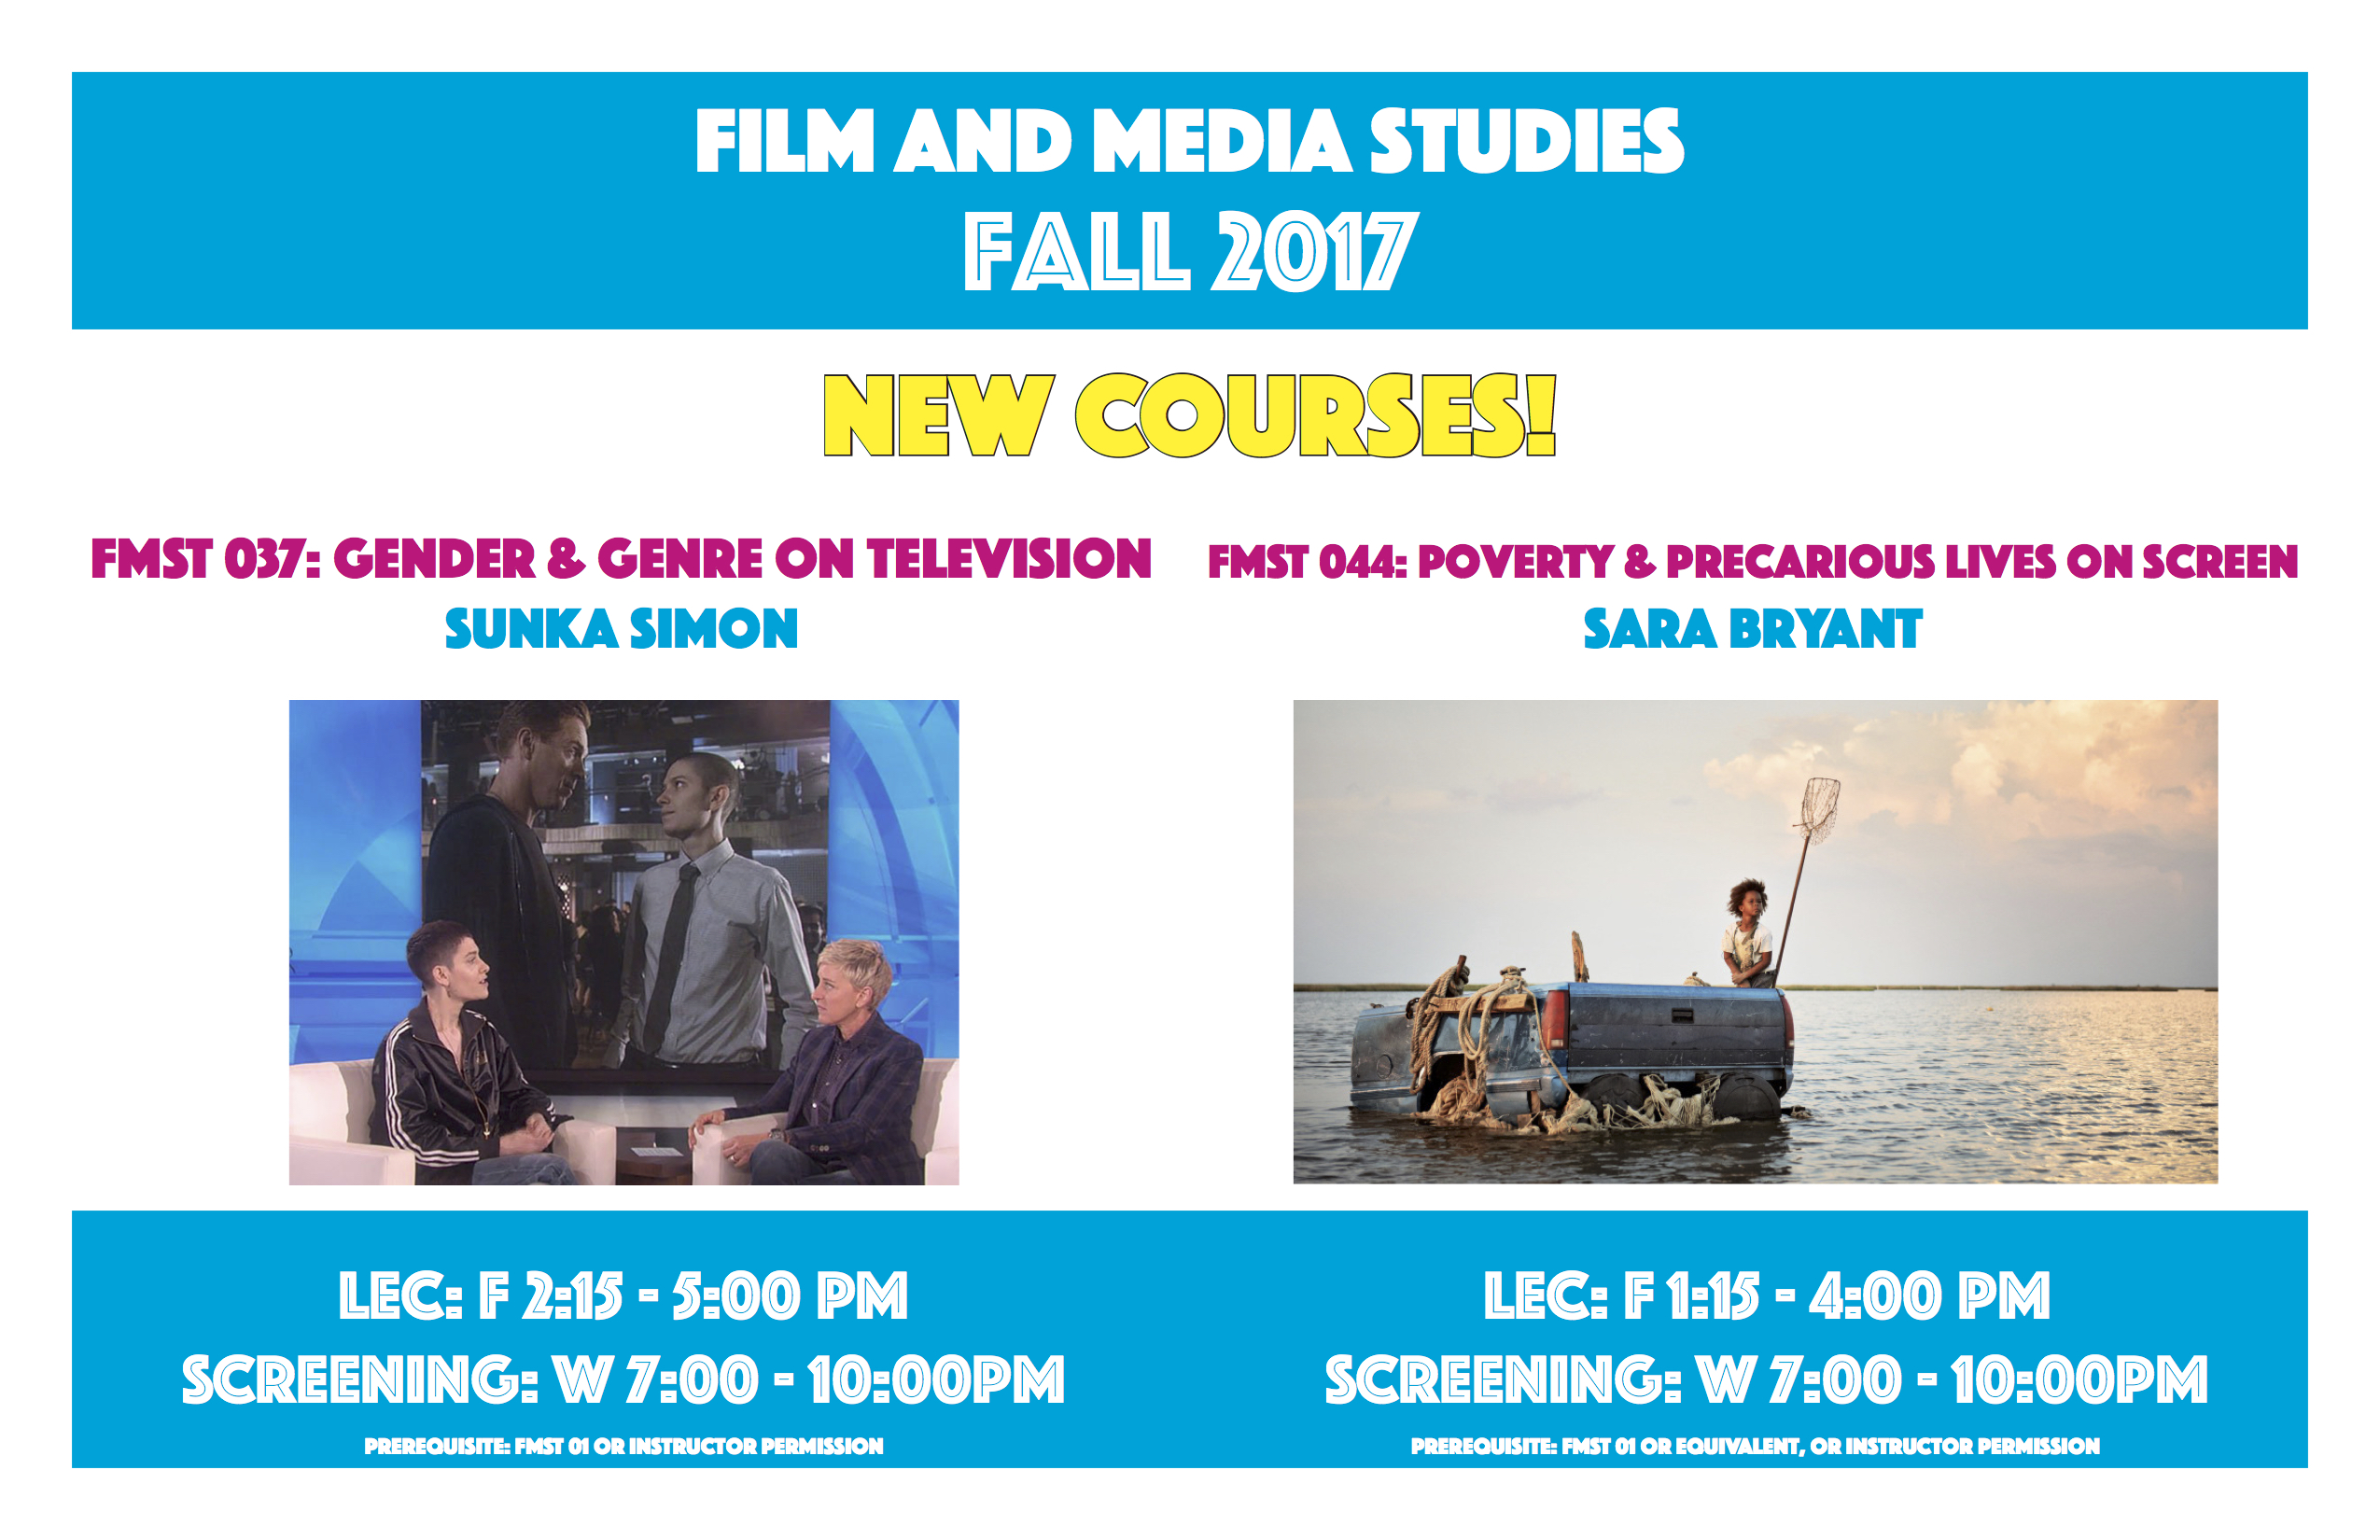 poster highlighting the new courses for FMST's fall 2017 semester